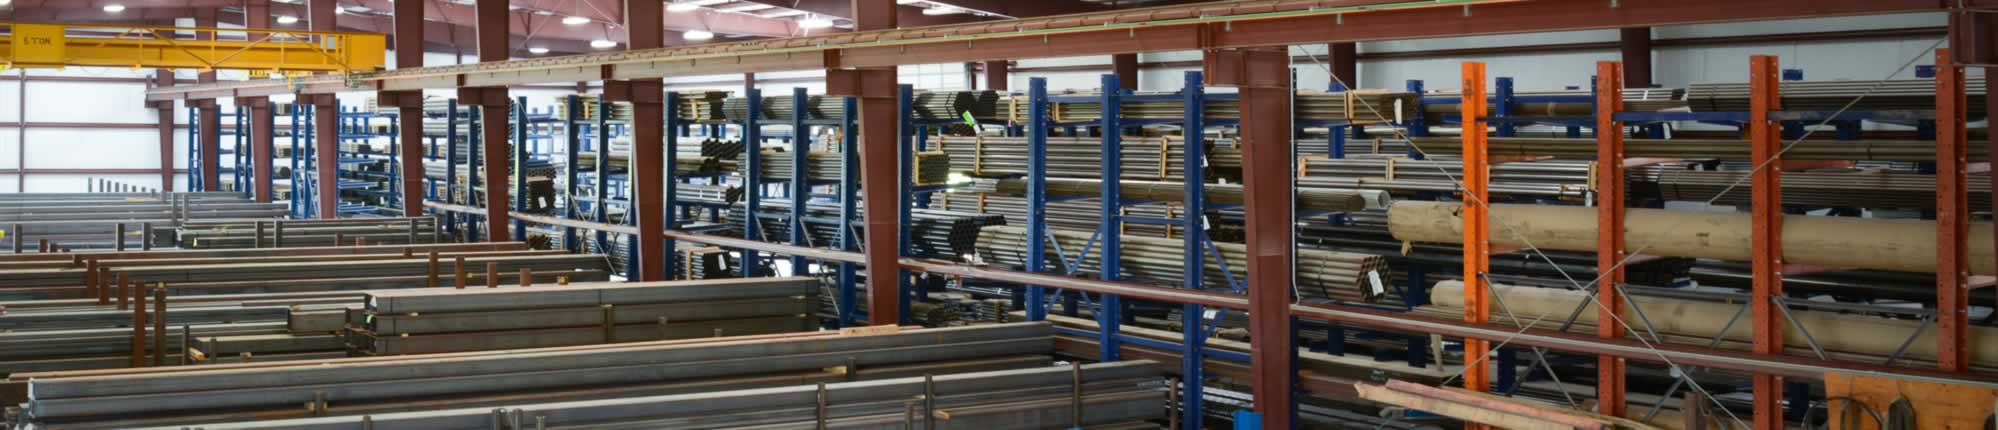 JP Steel is a leading distributor of carbon, alloy and stainless steel pipe, tubing and bar products.